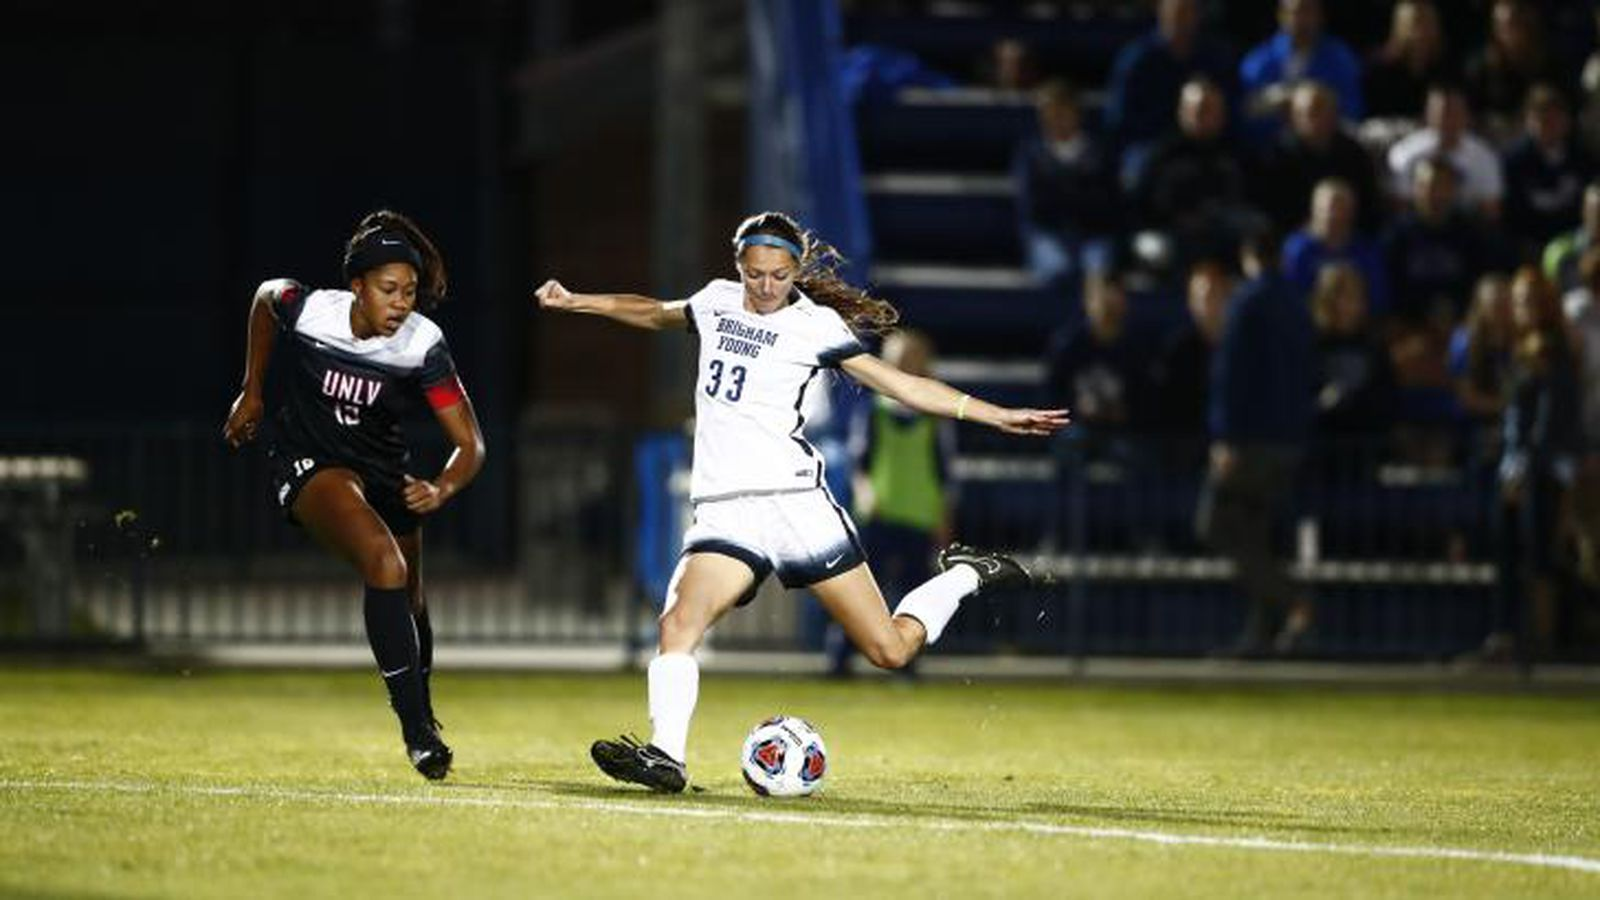 BYU women's soccer: Ashley Hatch selected by the North Carolina Courage with the second pick of the NWSL Draft